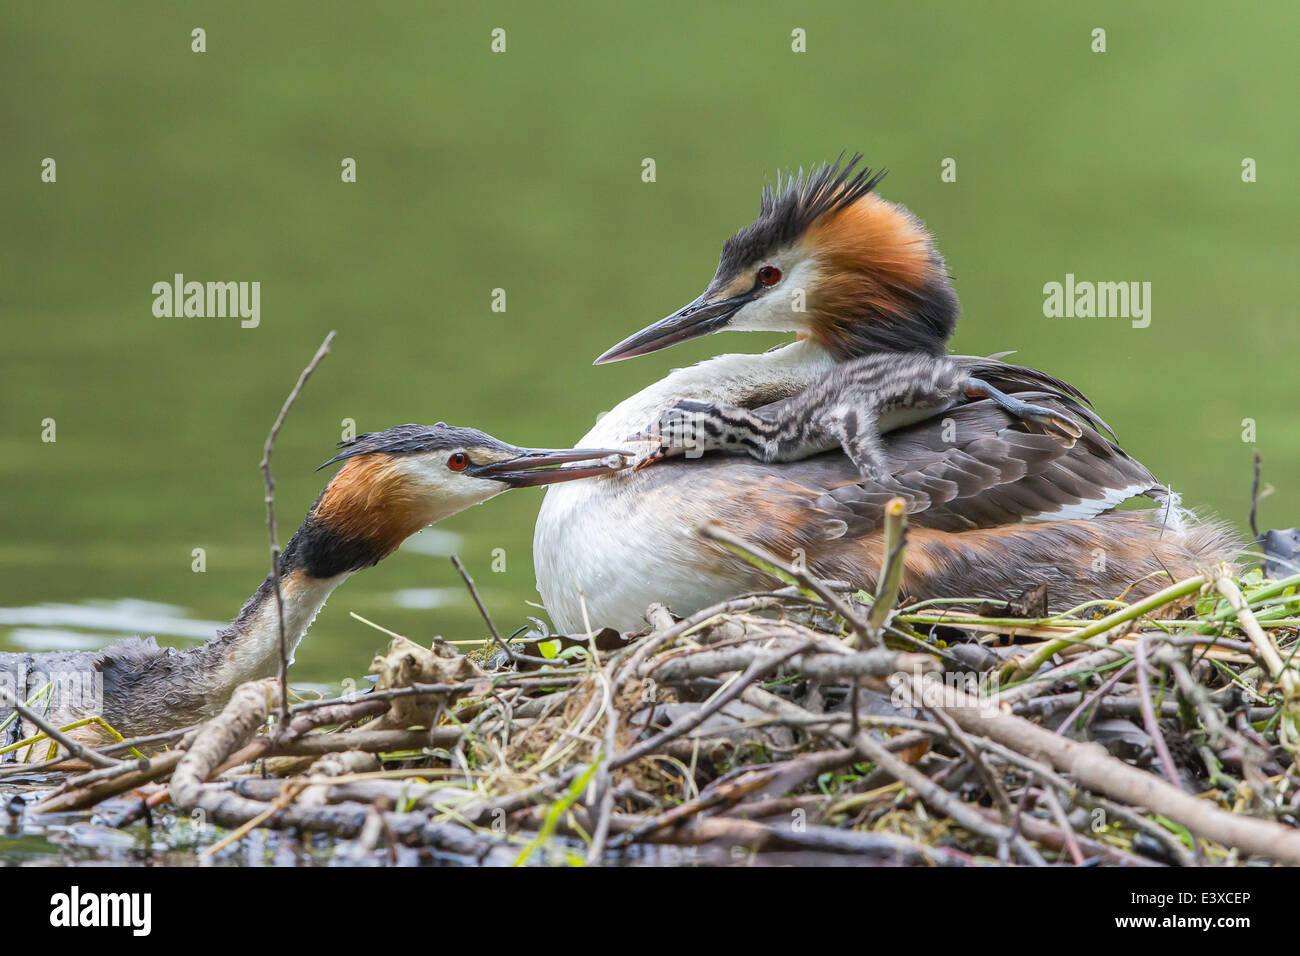 Great Crested Grebes (Podiceps cristatus), feeding chick at the nest, North Hesse, Hesse, Germany - Stock Image